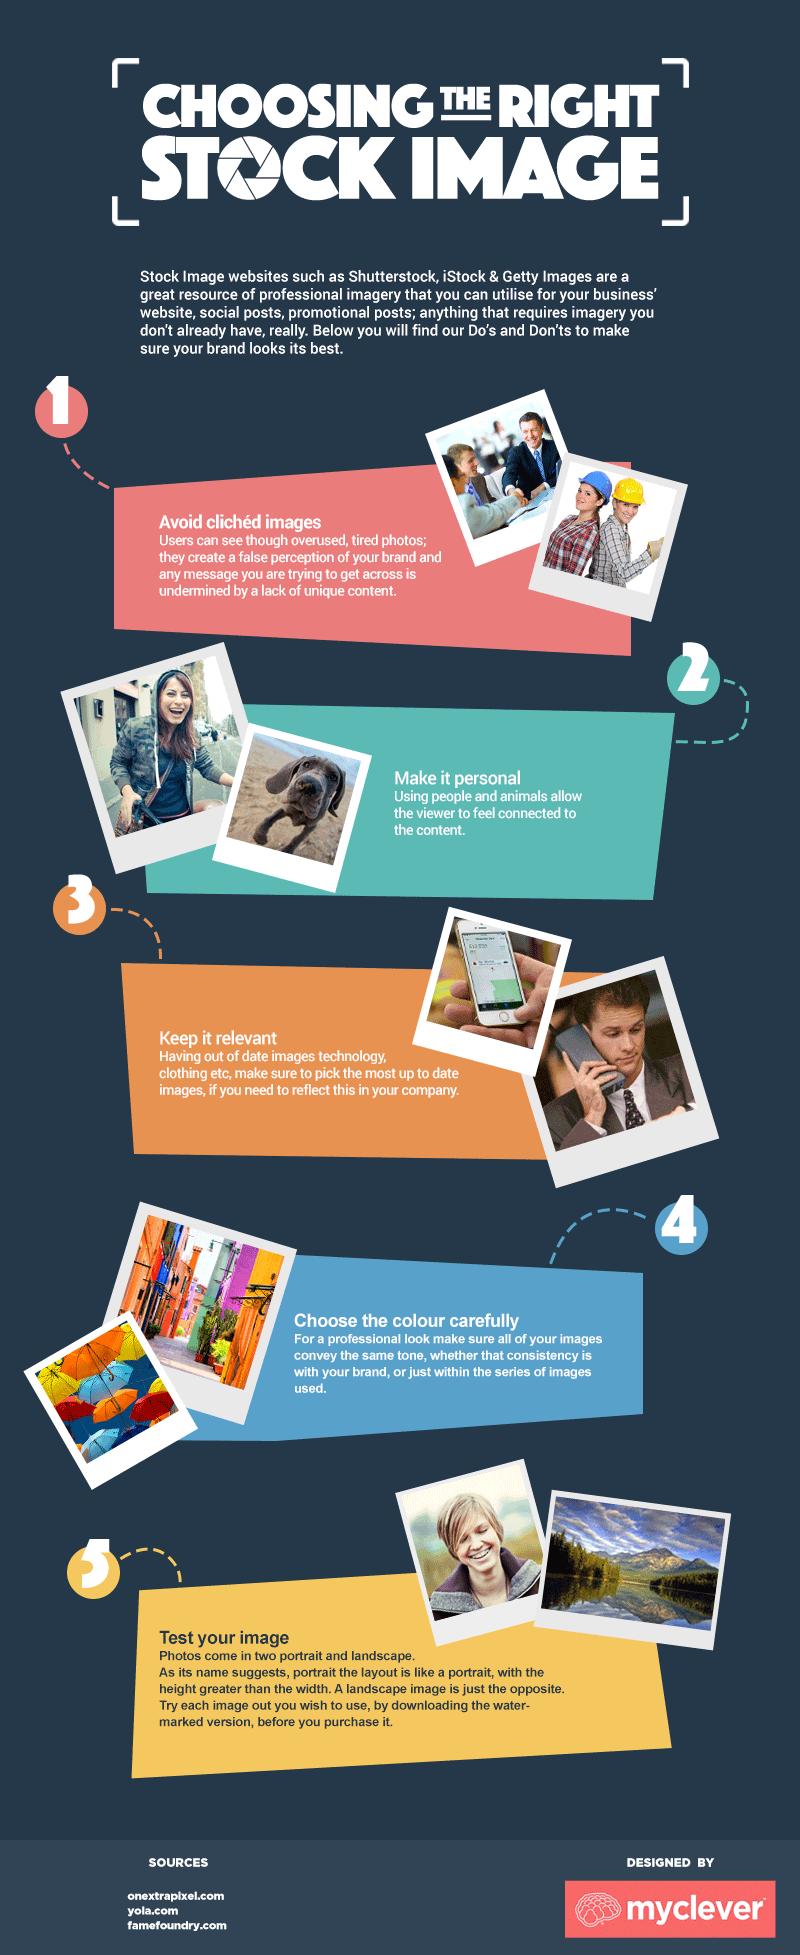 5 Critical Tips to Choose the Right Stock Image: Infographic